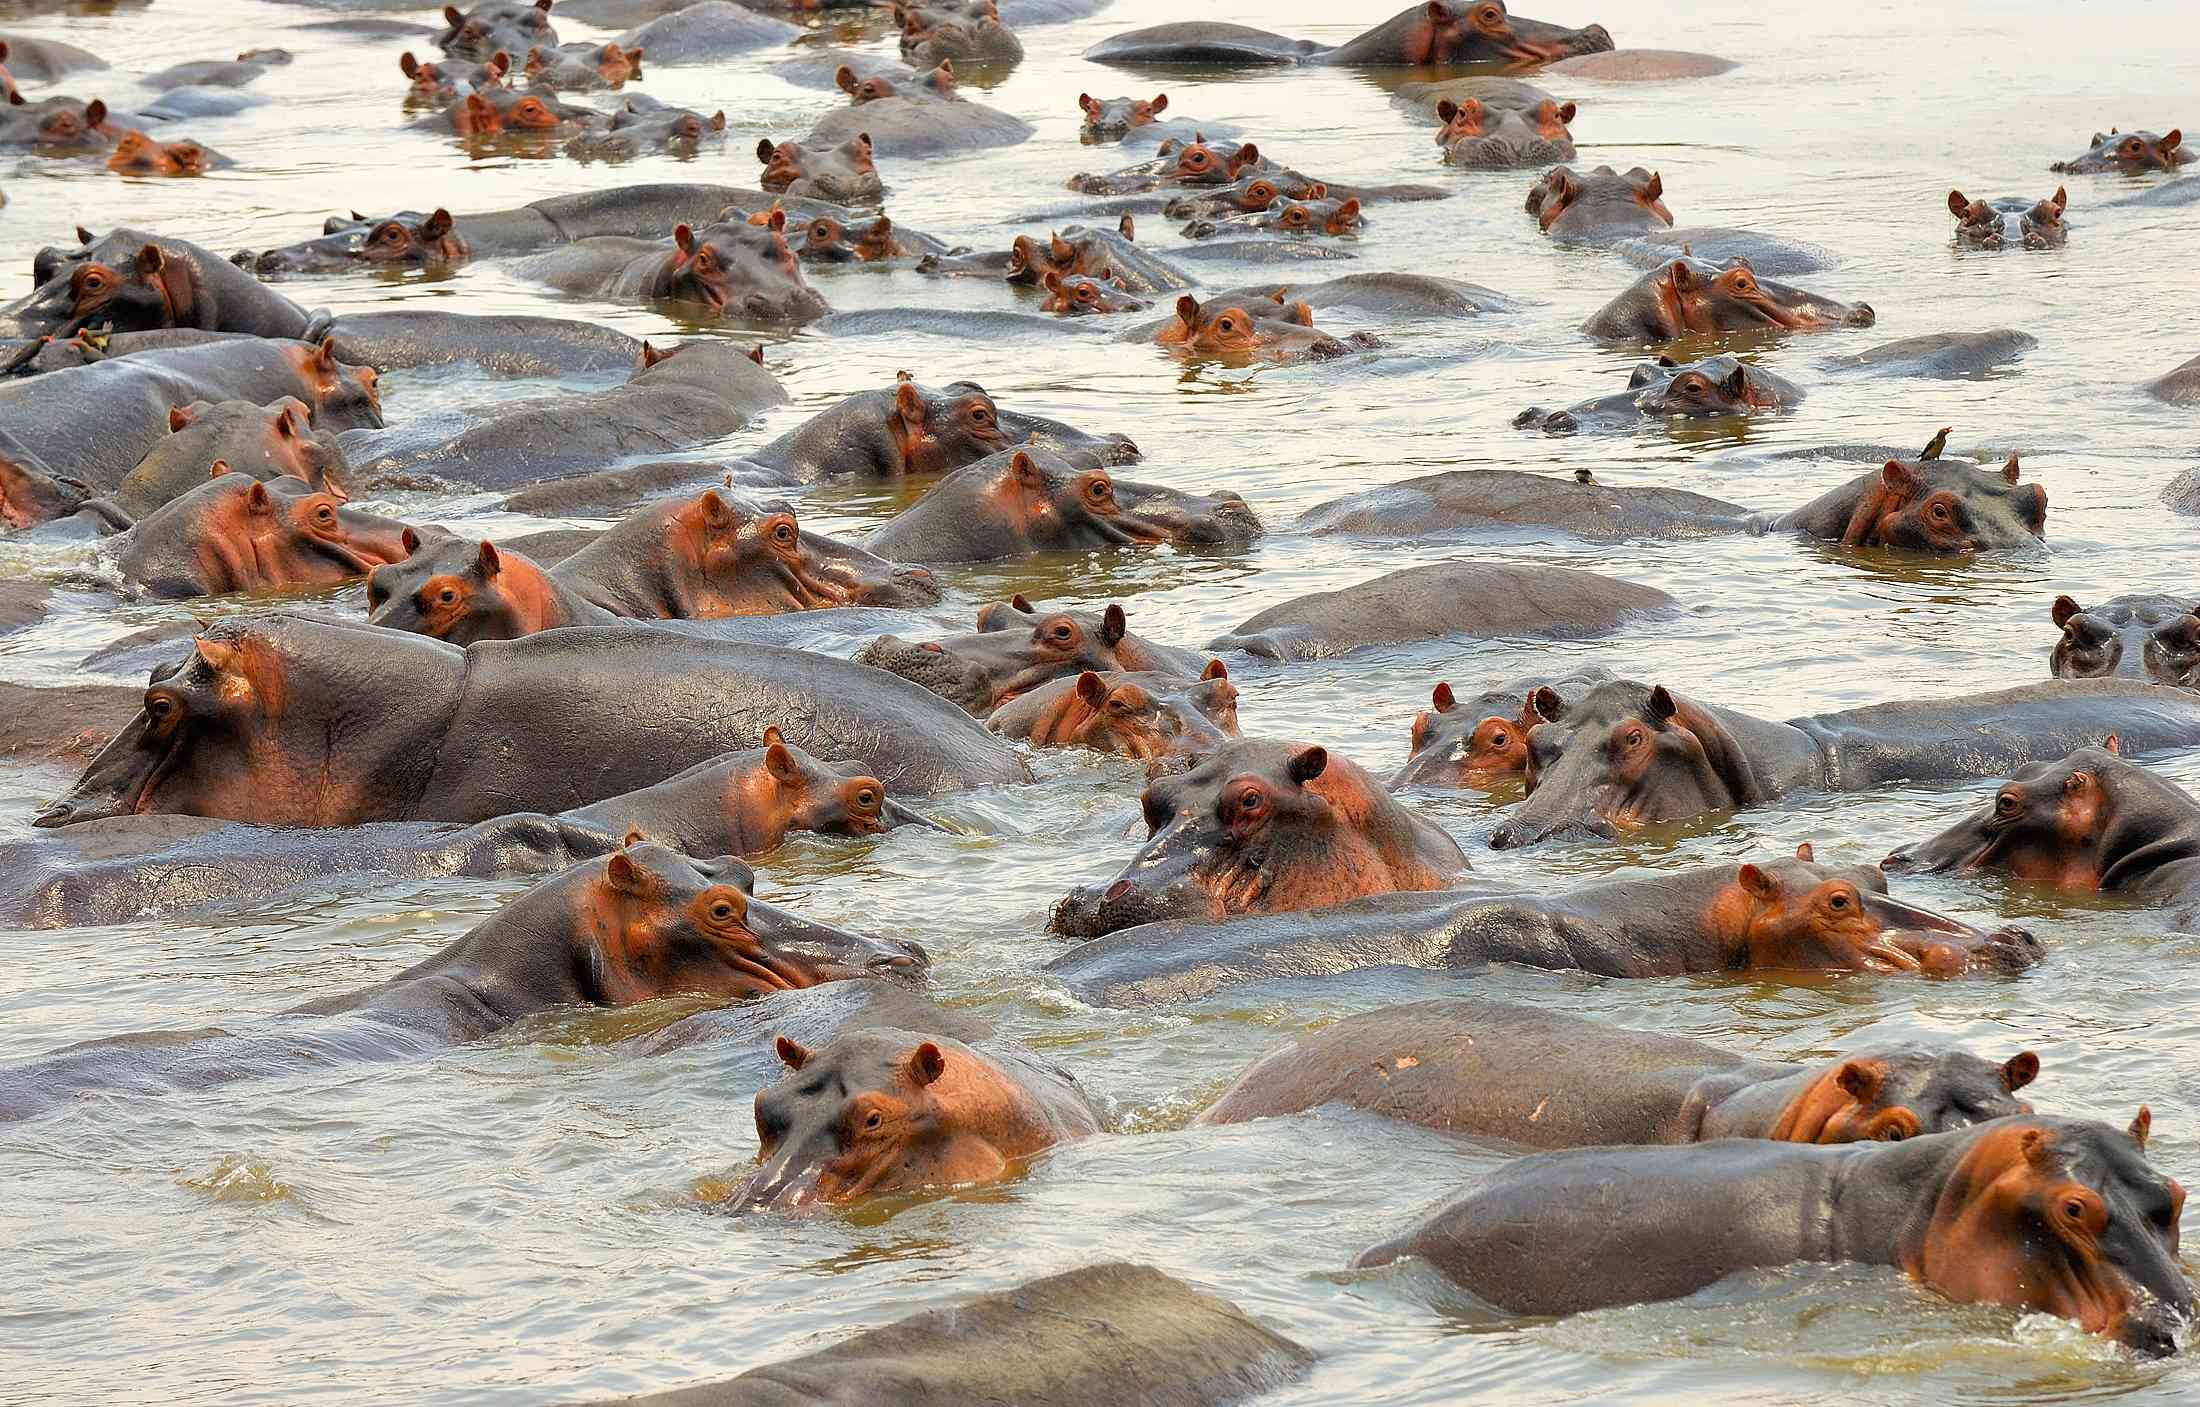 Close up of a group of hippos in the water